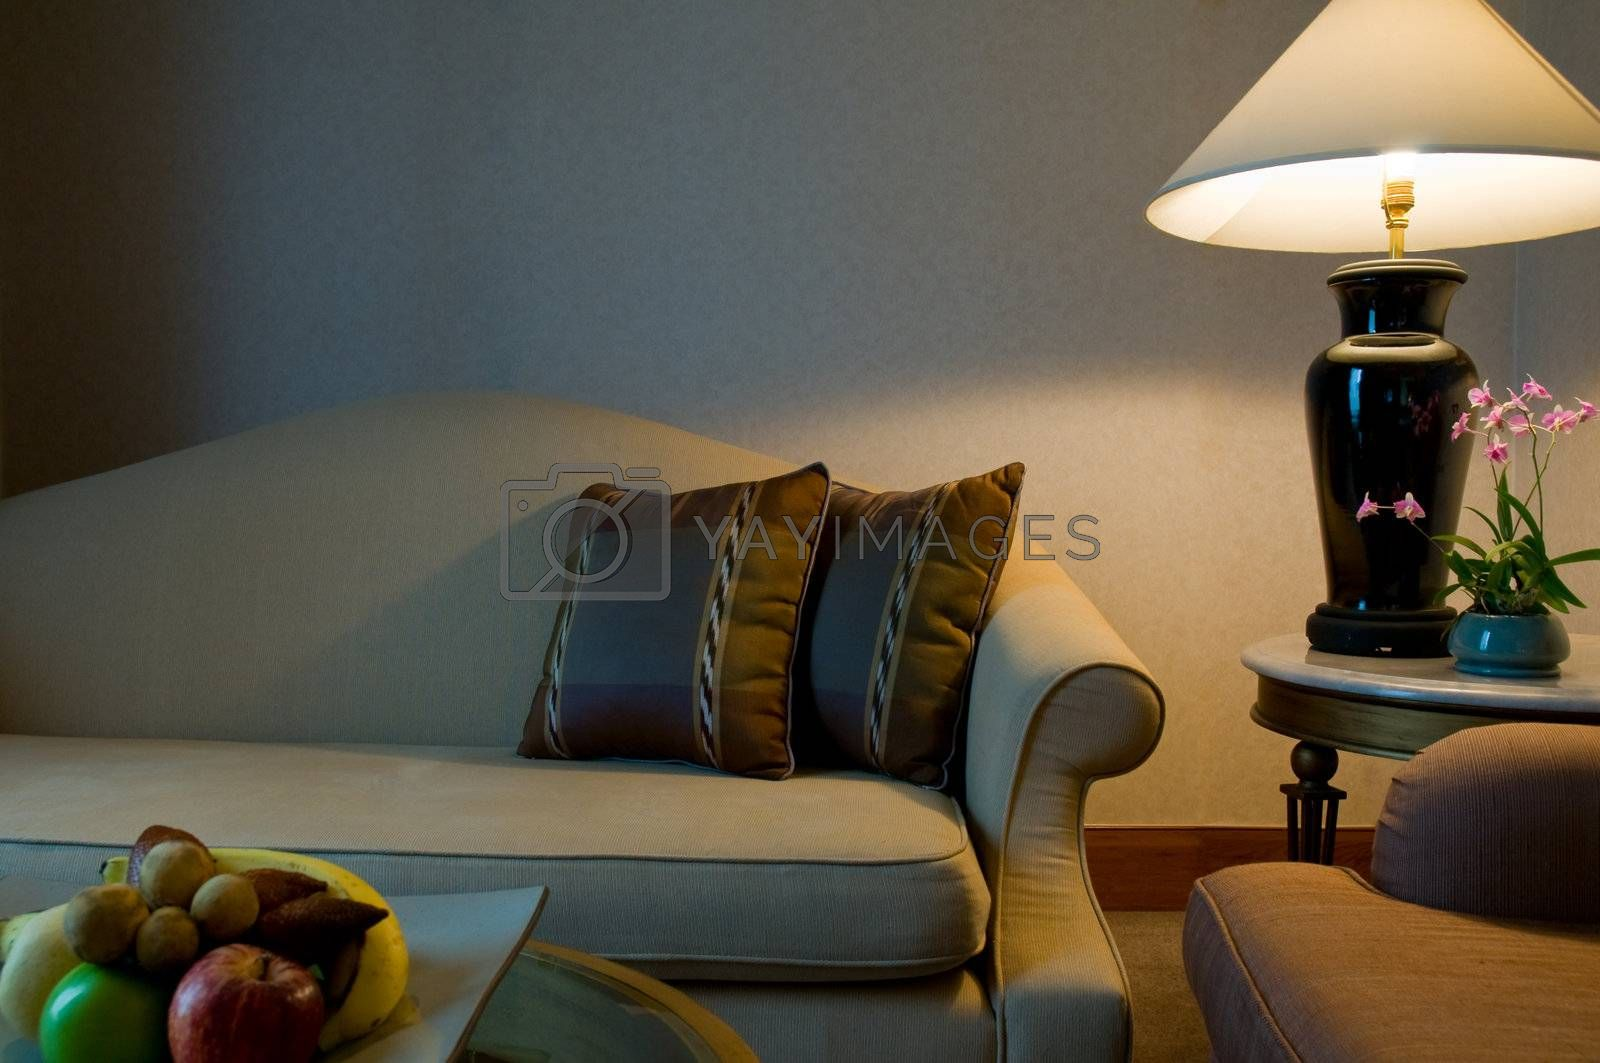 Sitting area of a 5 star luxury hotel suite room, with fruit and orchids